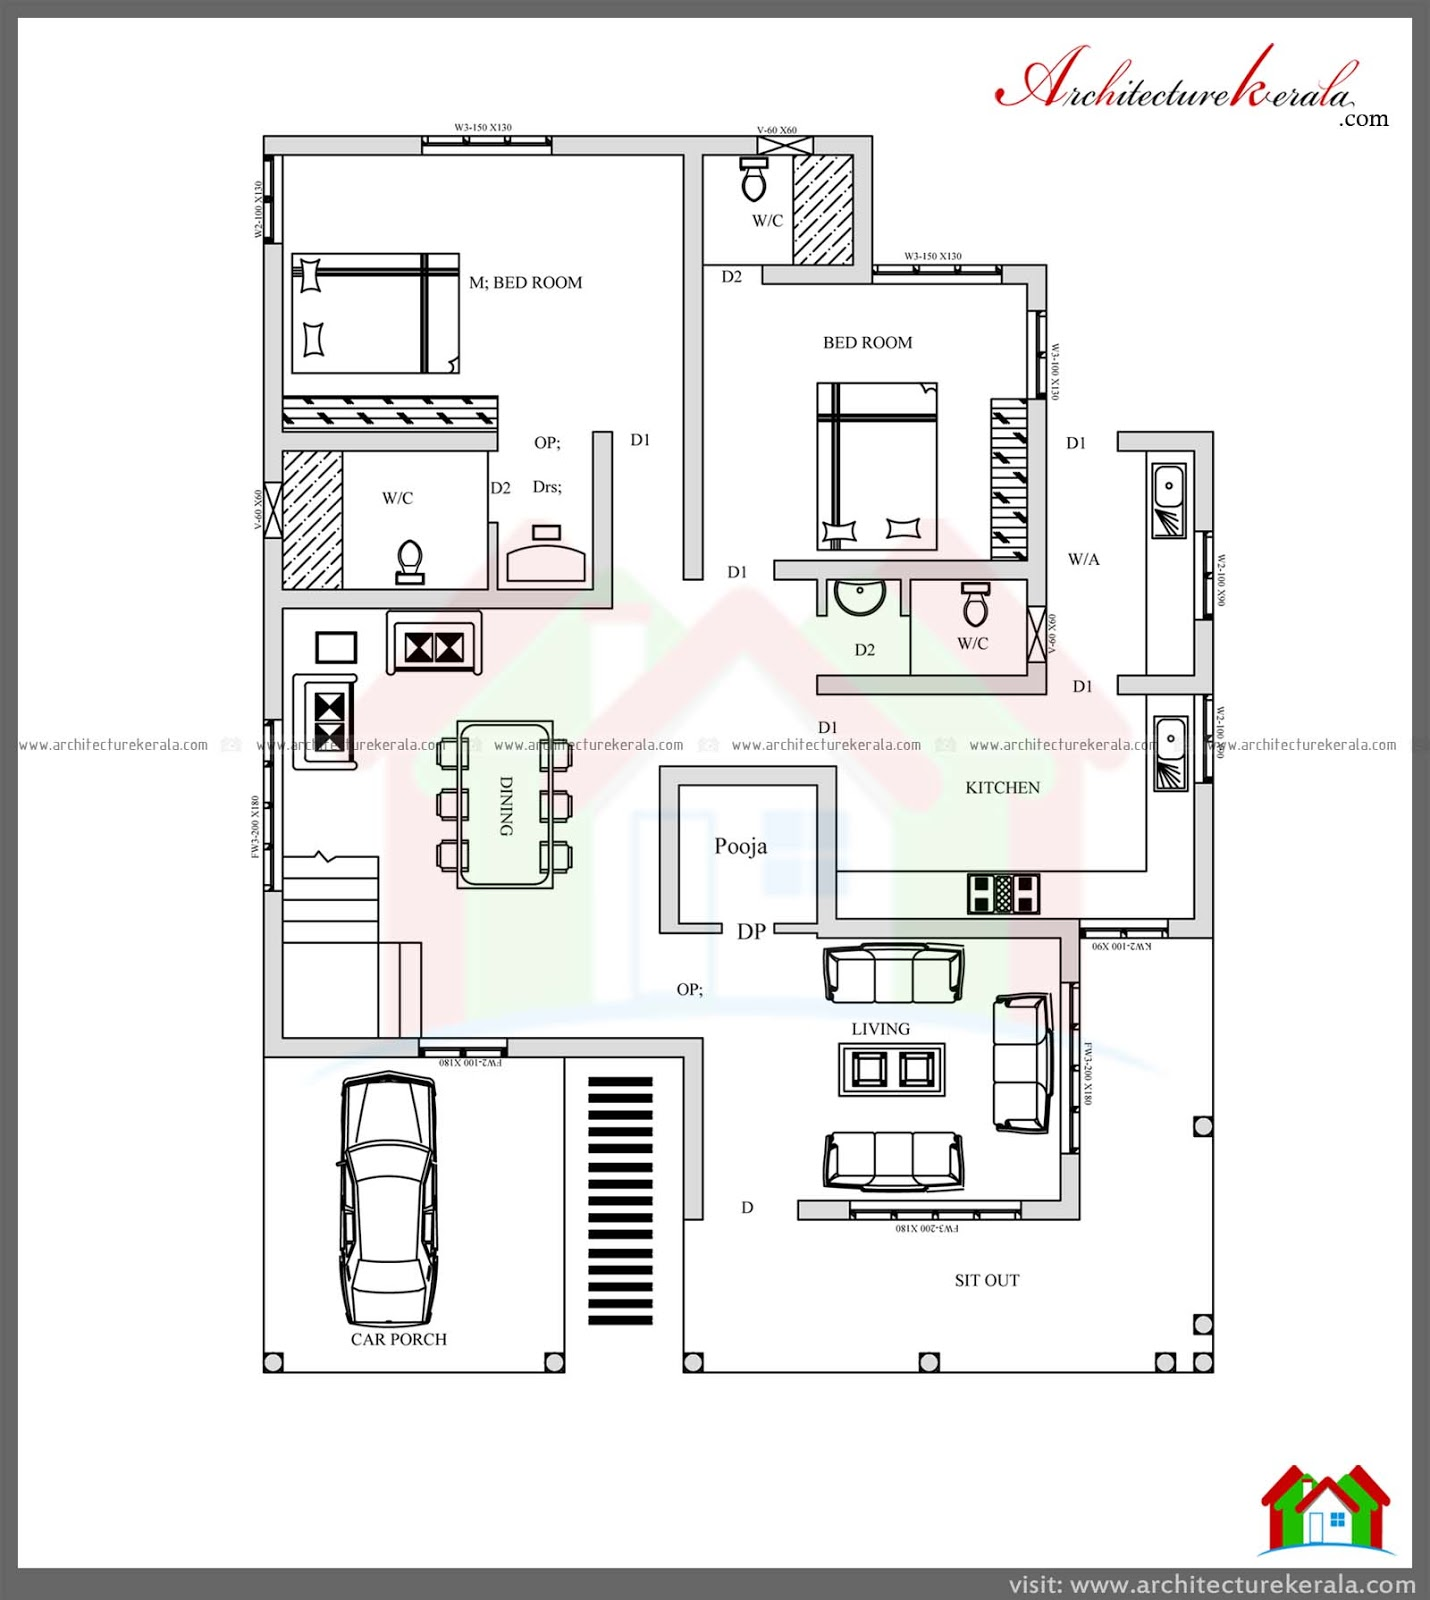 4 bed house plan with pooja room architecture kerala for Housing plans kerala